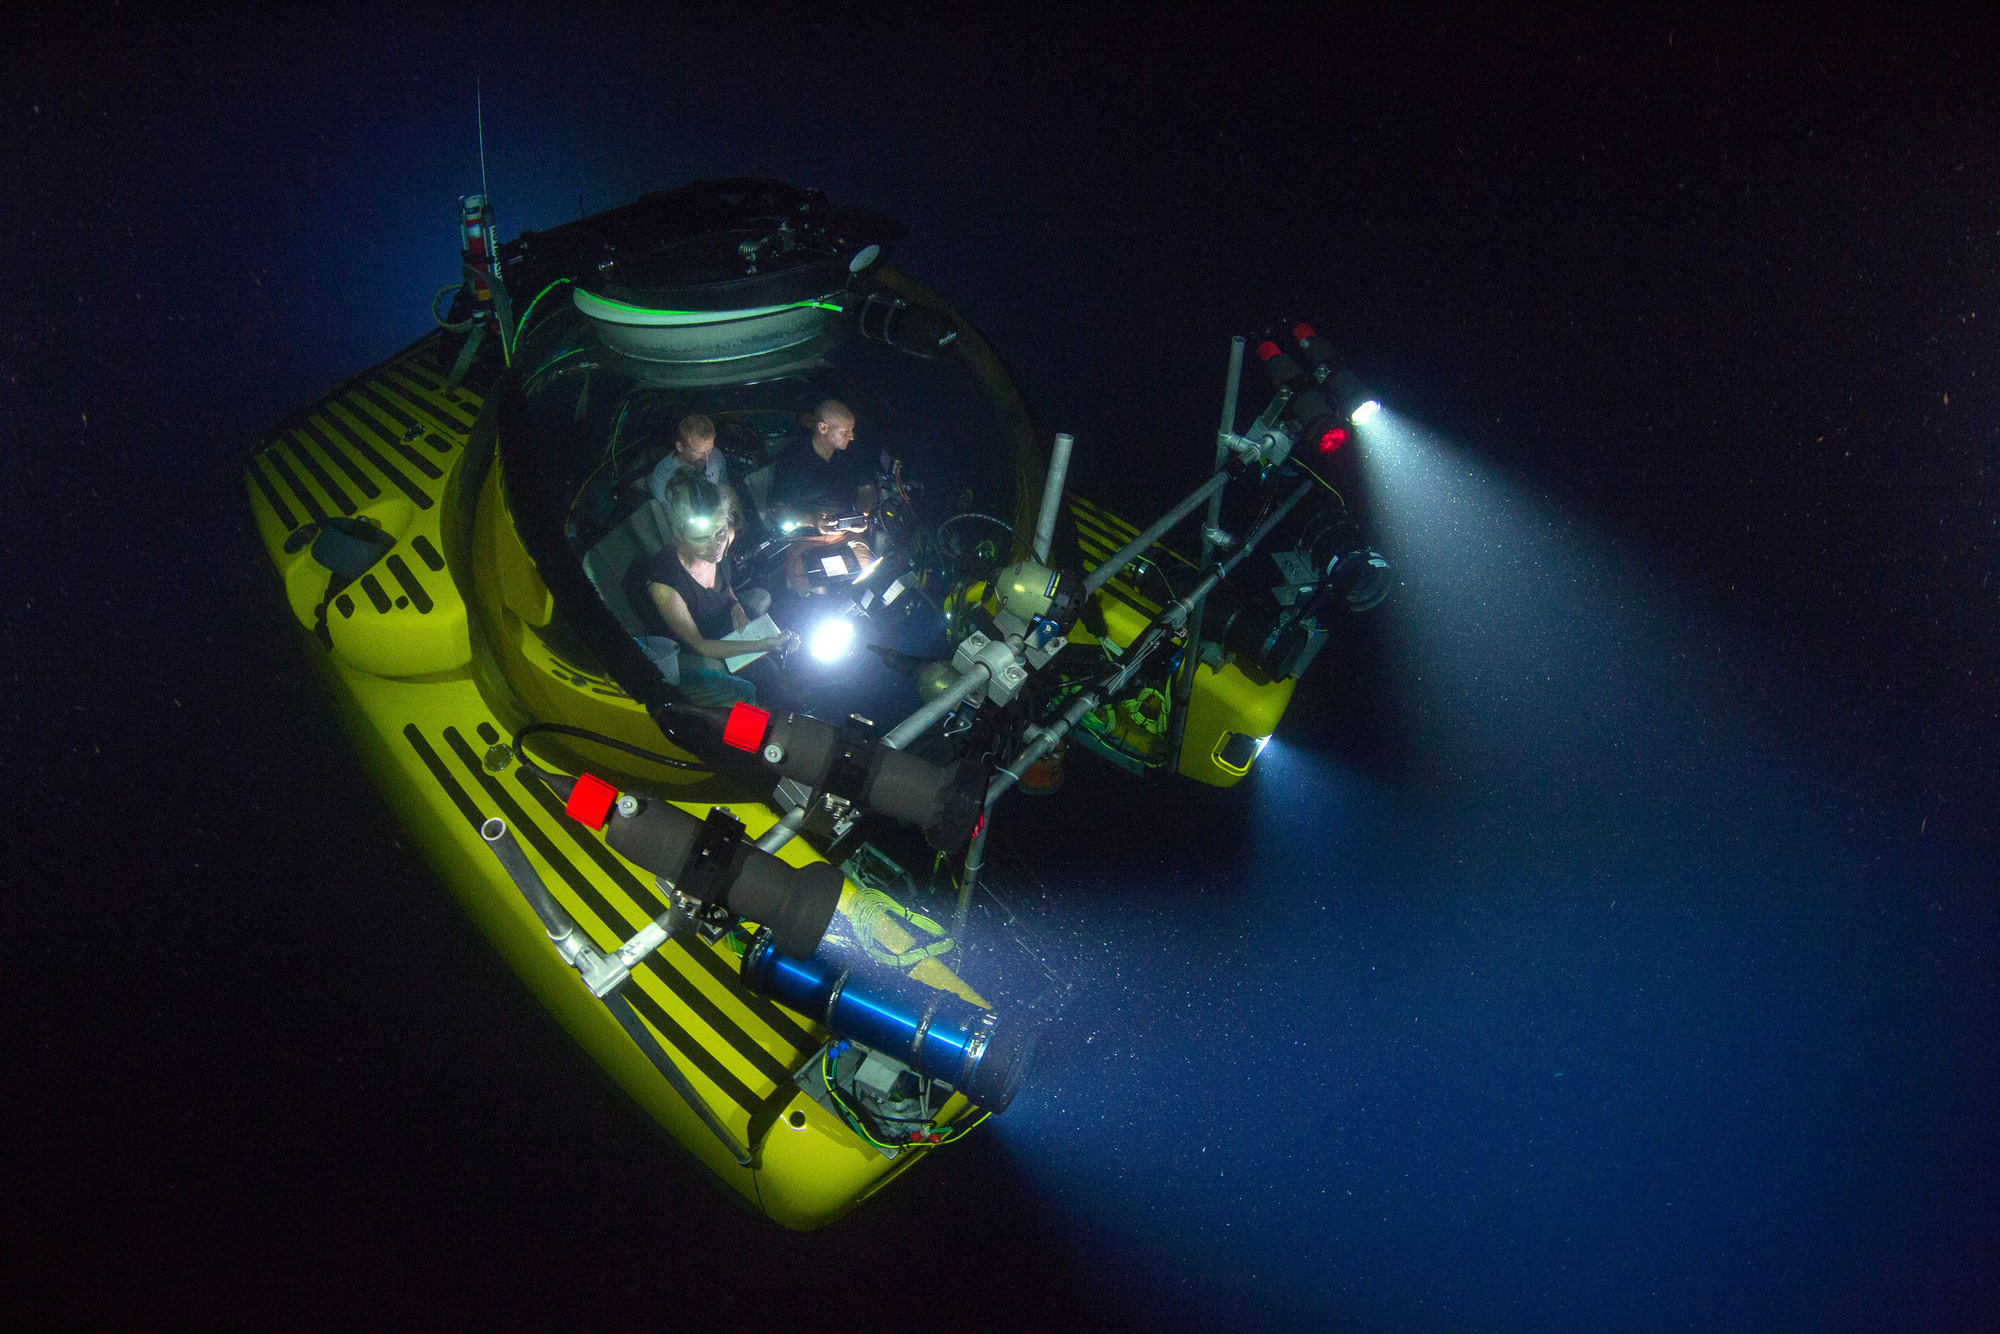 The three-man submersible 'Nadir'. The Blue Planet II team worked with several submarines to film the Deep episode, spending a thousand hours in them across the world's deep oceans to capture landscapes and behaviours never seen before. (BBC, TL)